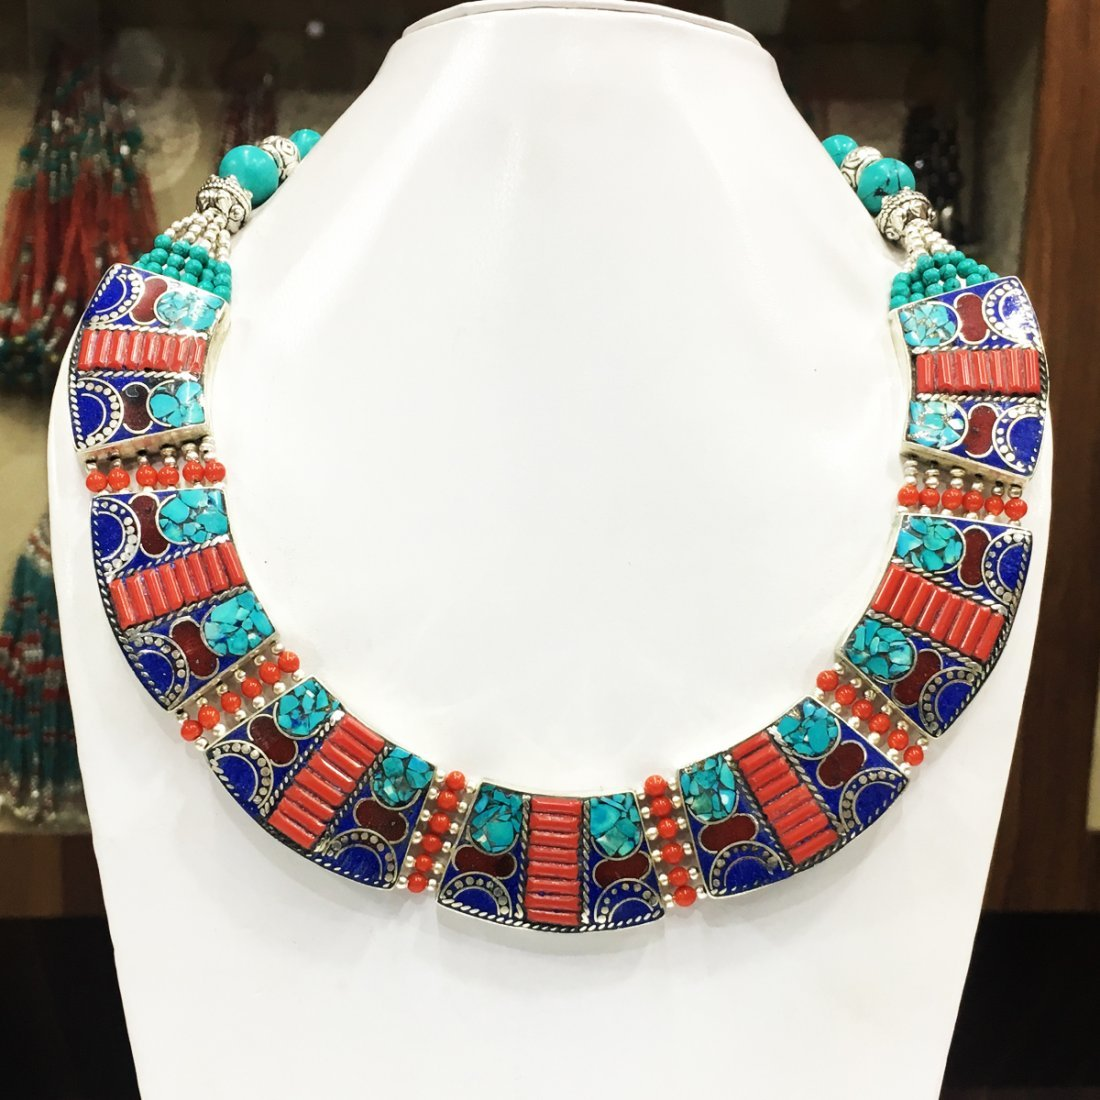 New Arrival - Tibetan Handmade Coral Nepali Necklace